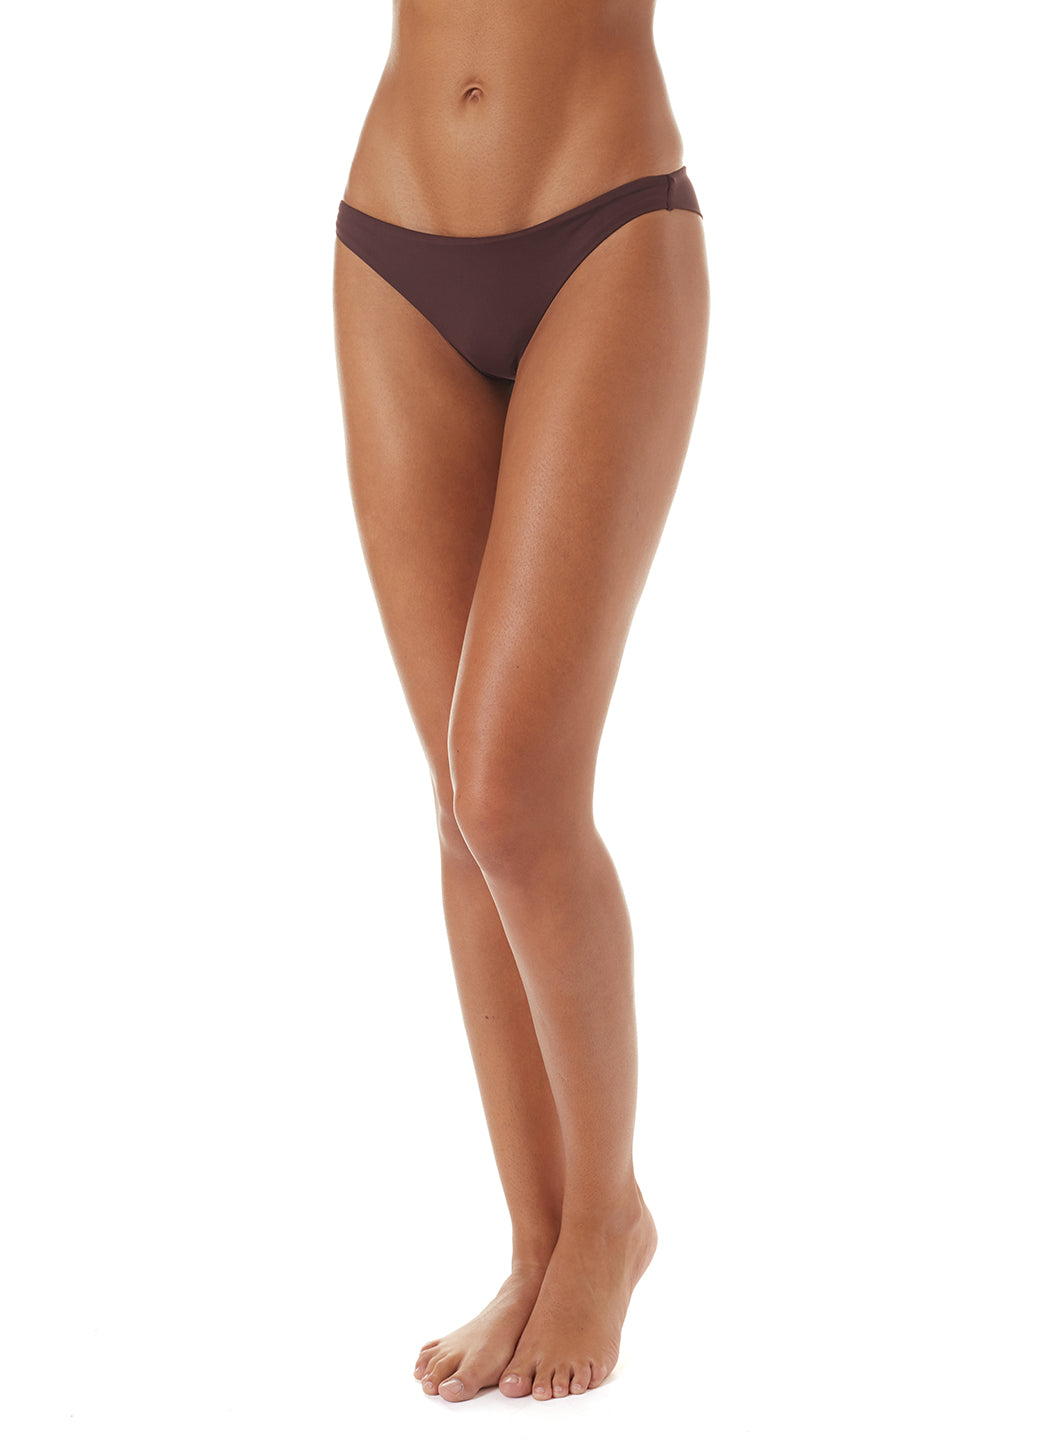 Exclusive Sisi Skimpy Bikini Bottoms Walnut